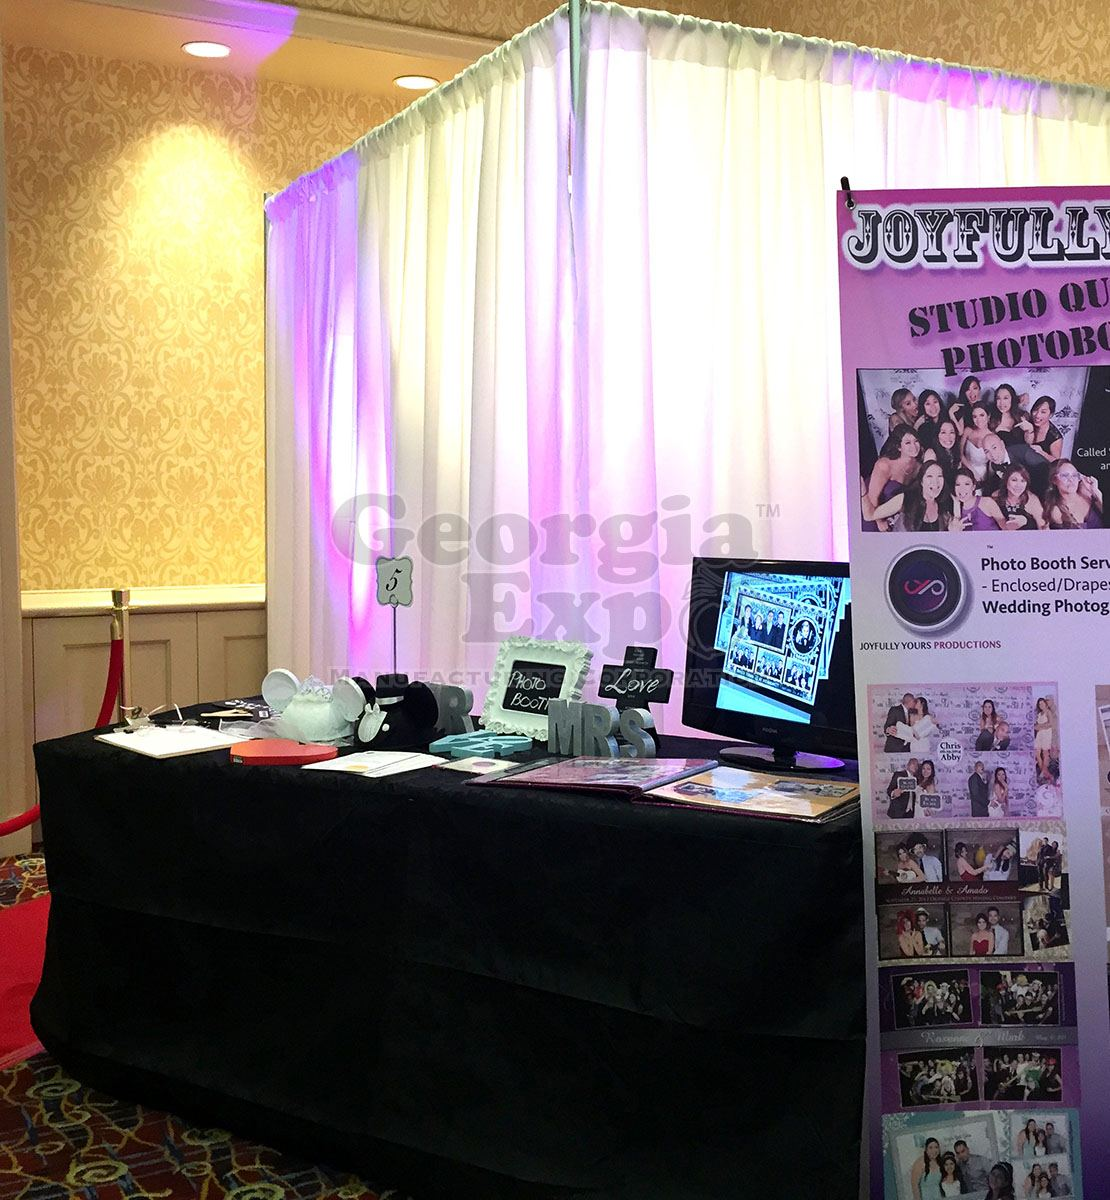 Decor Photobooth Pipe And Drape Photo Booth Kits Specialty Production And Av Equipment Georgia Expo